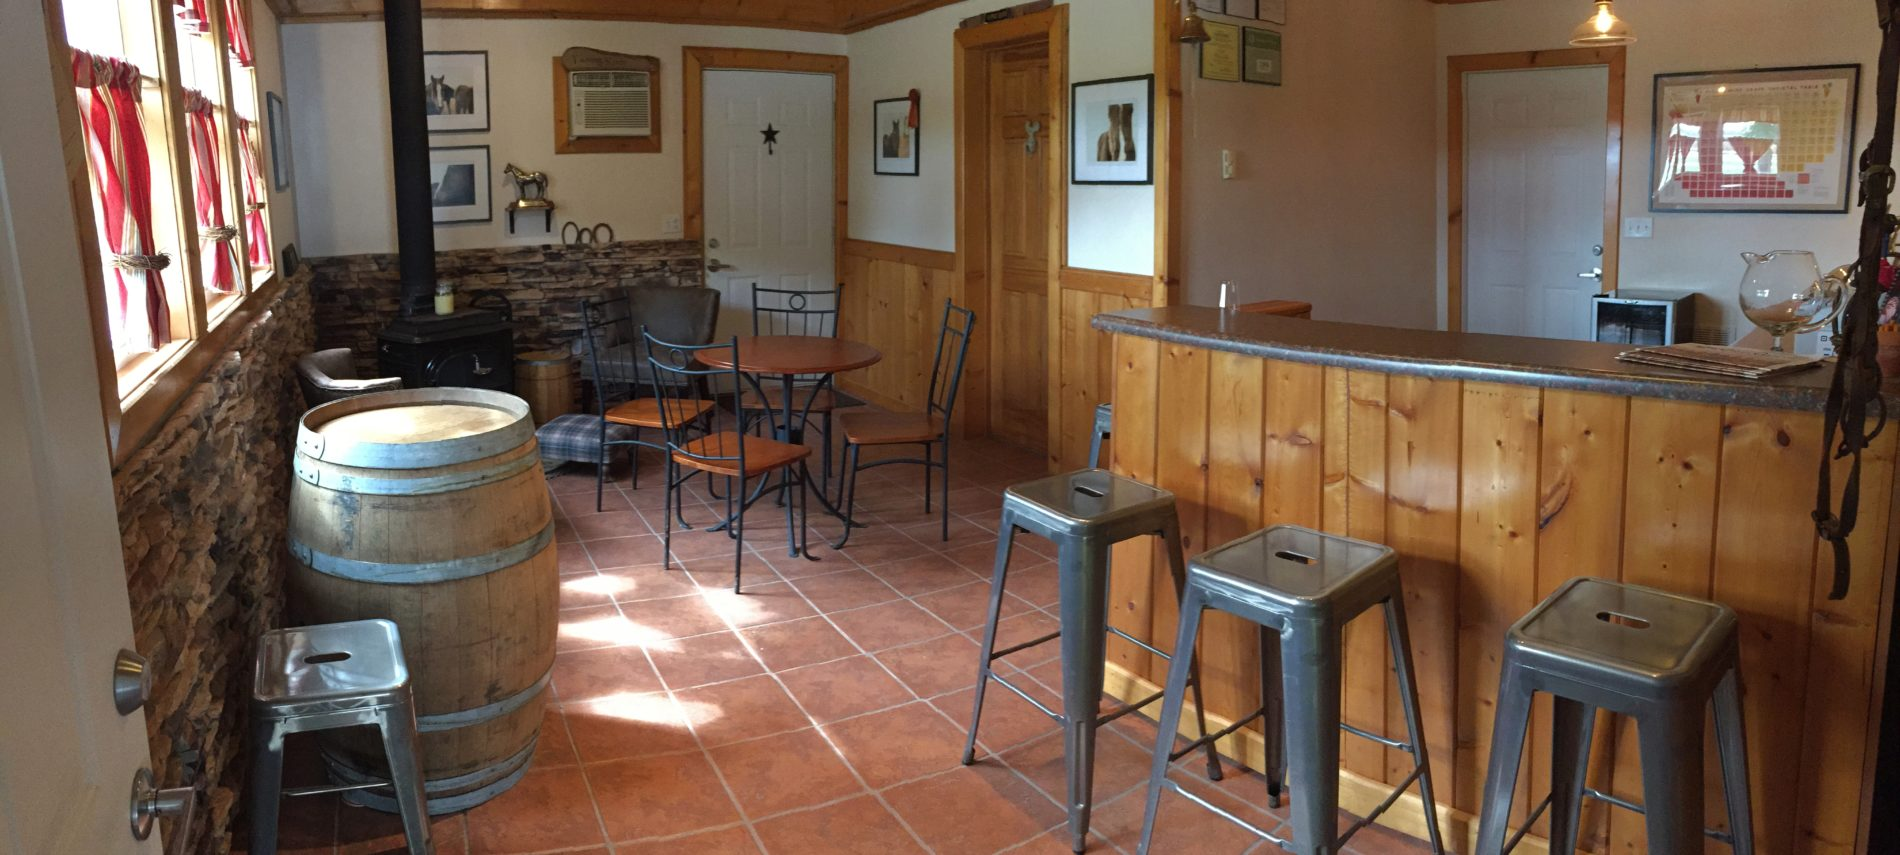 Tasting room at Crooked Creek Winery, wooden bar with metal top and metal stools. tile floor.